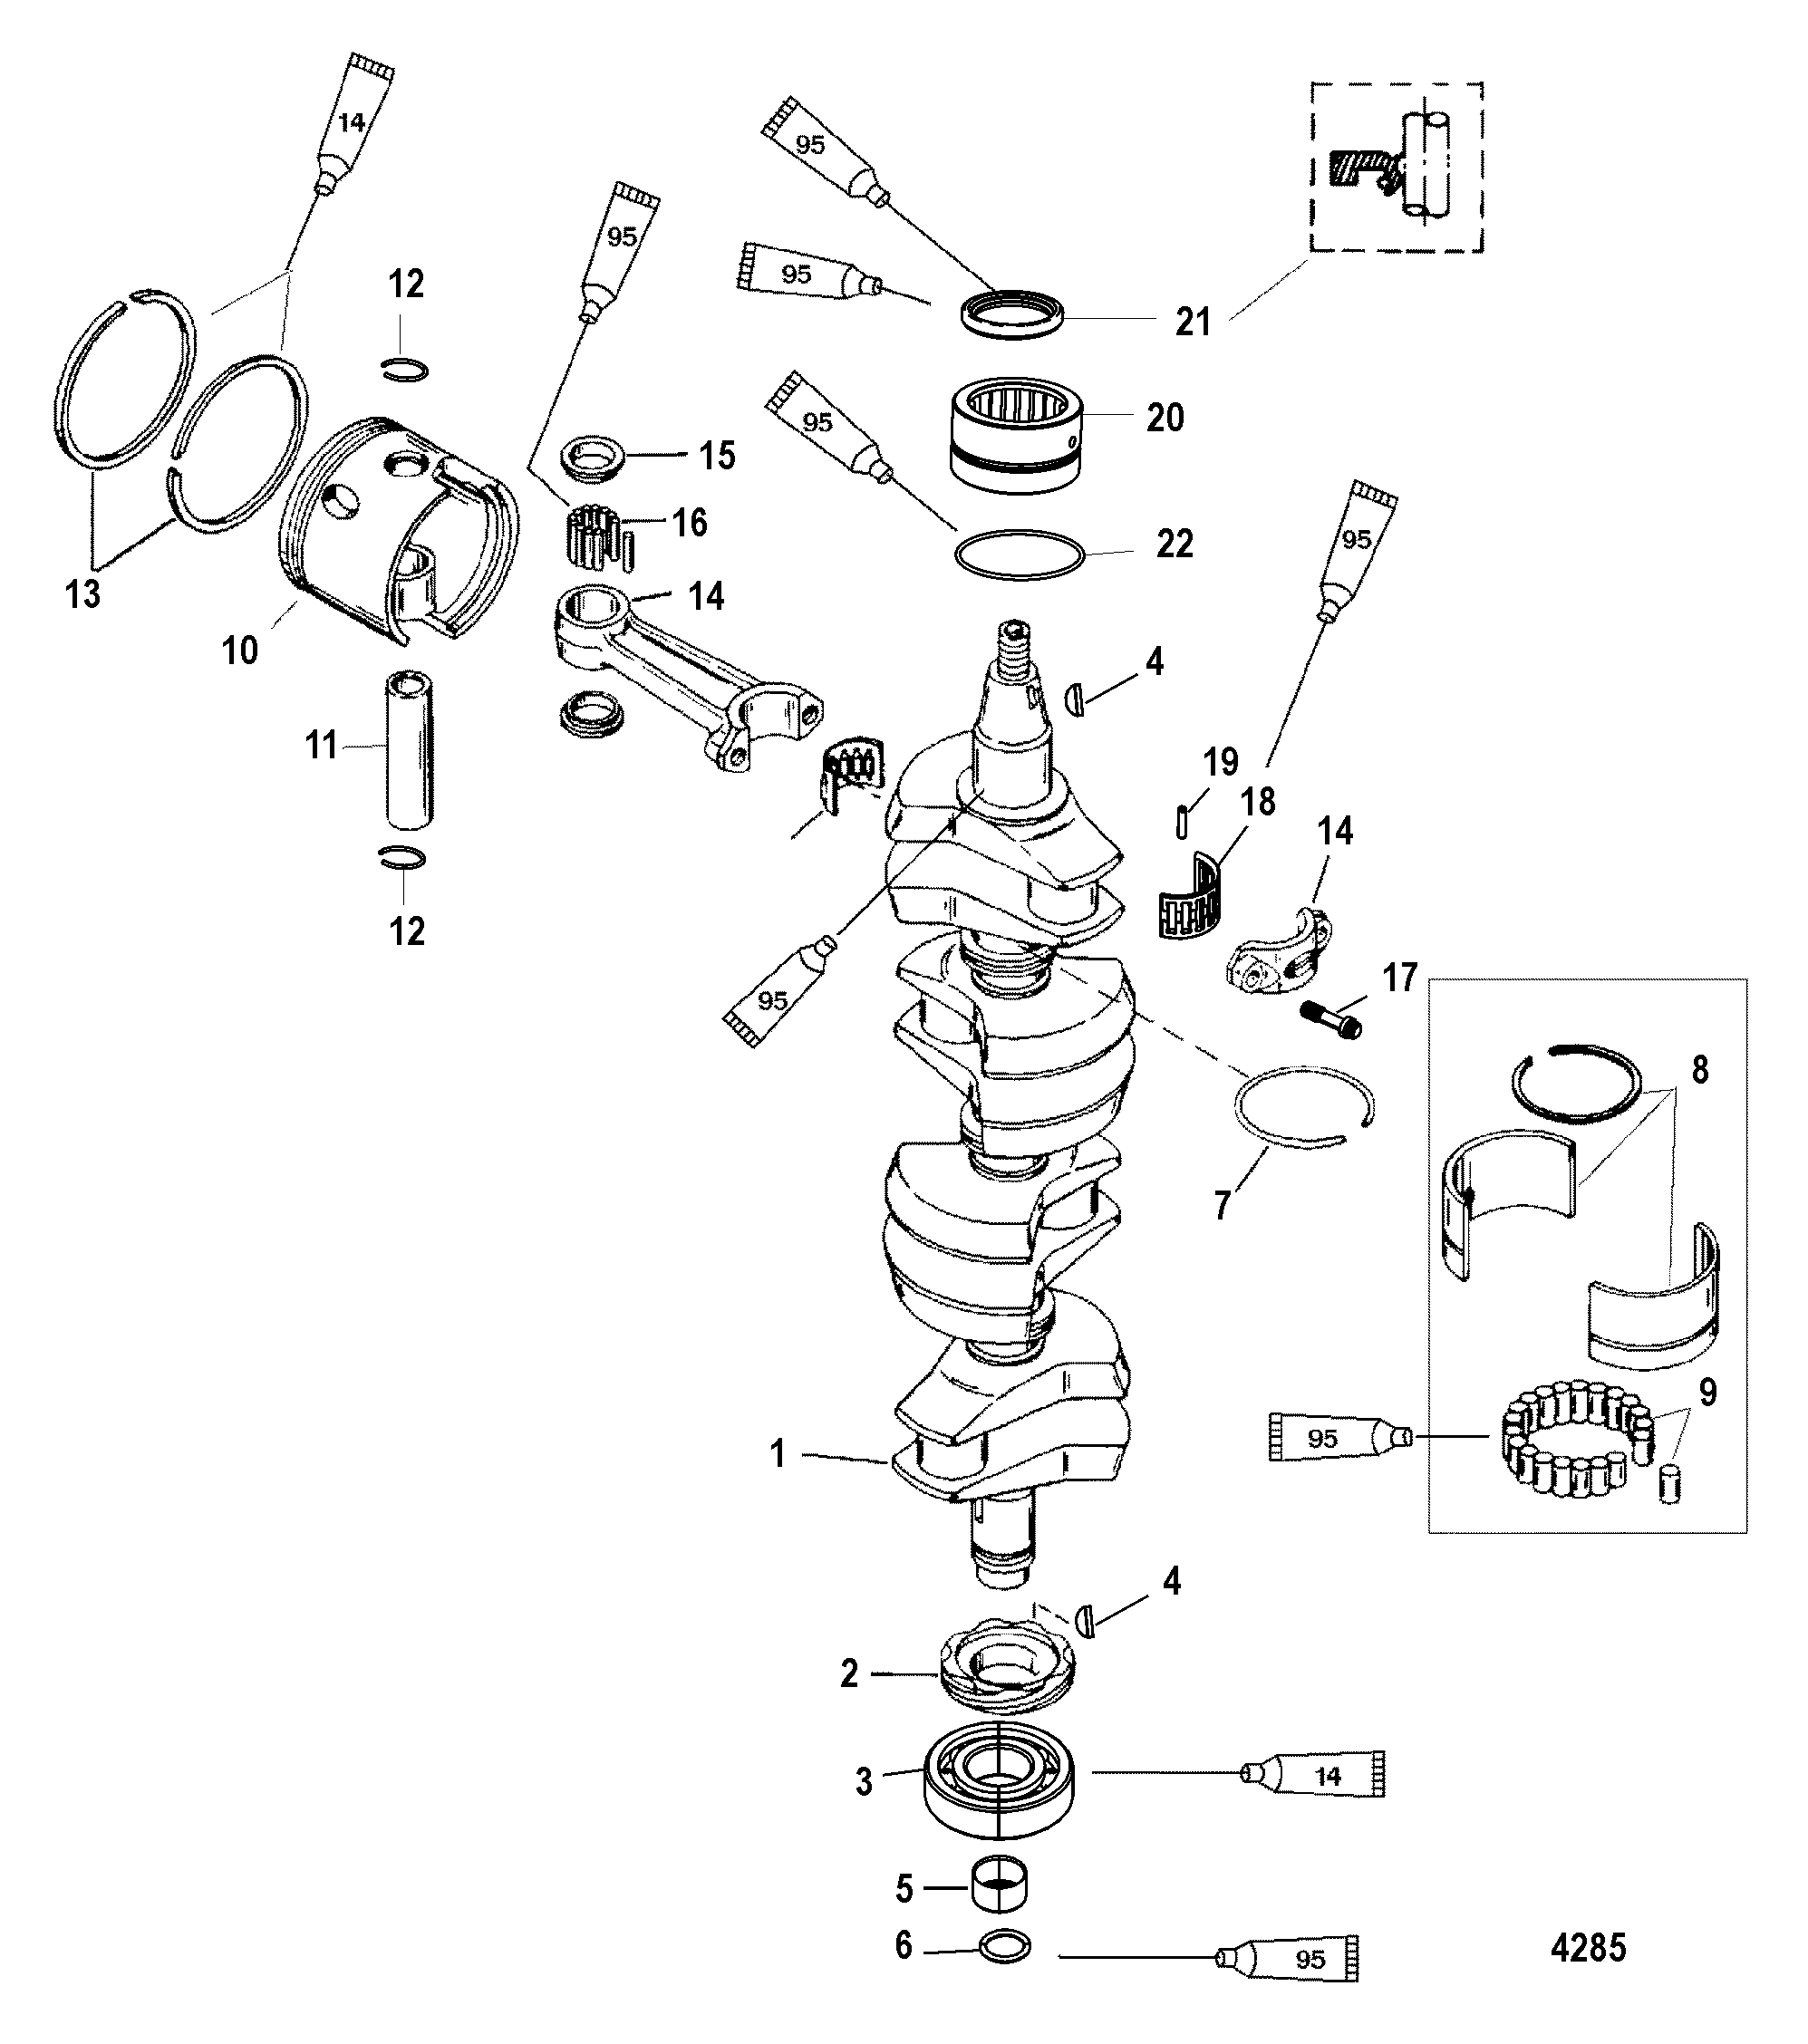 Crankshaft Pistons And Connecting Rods For Mariner